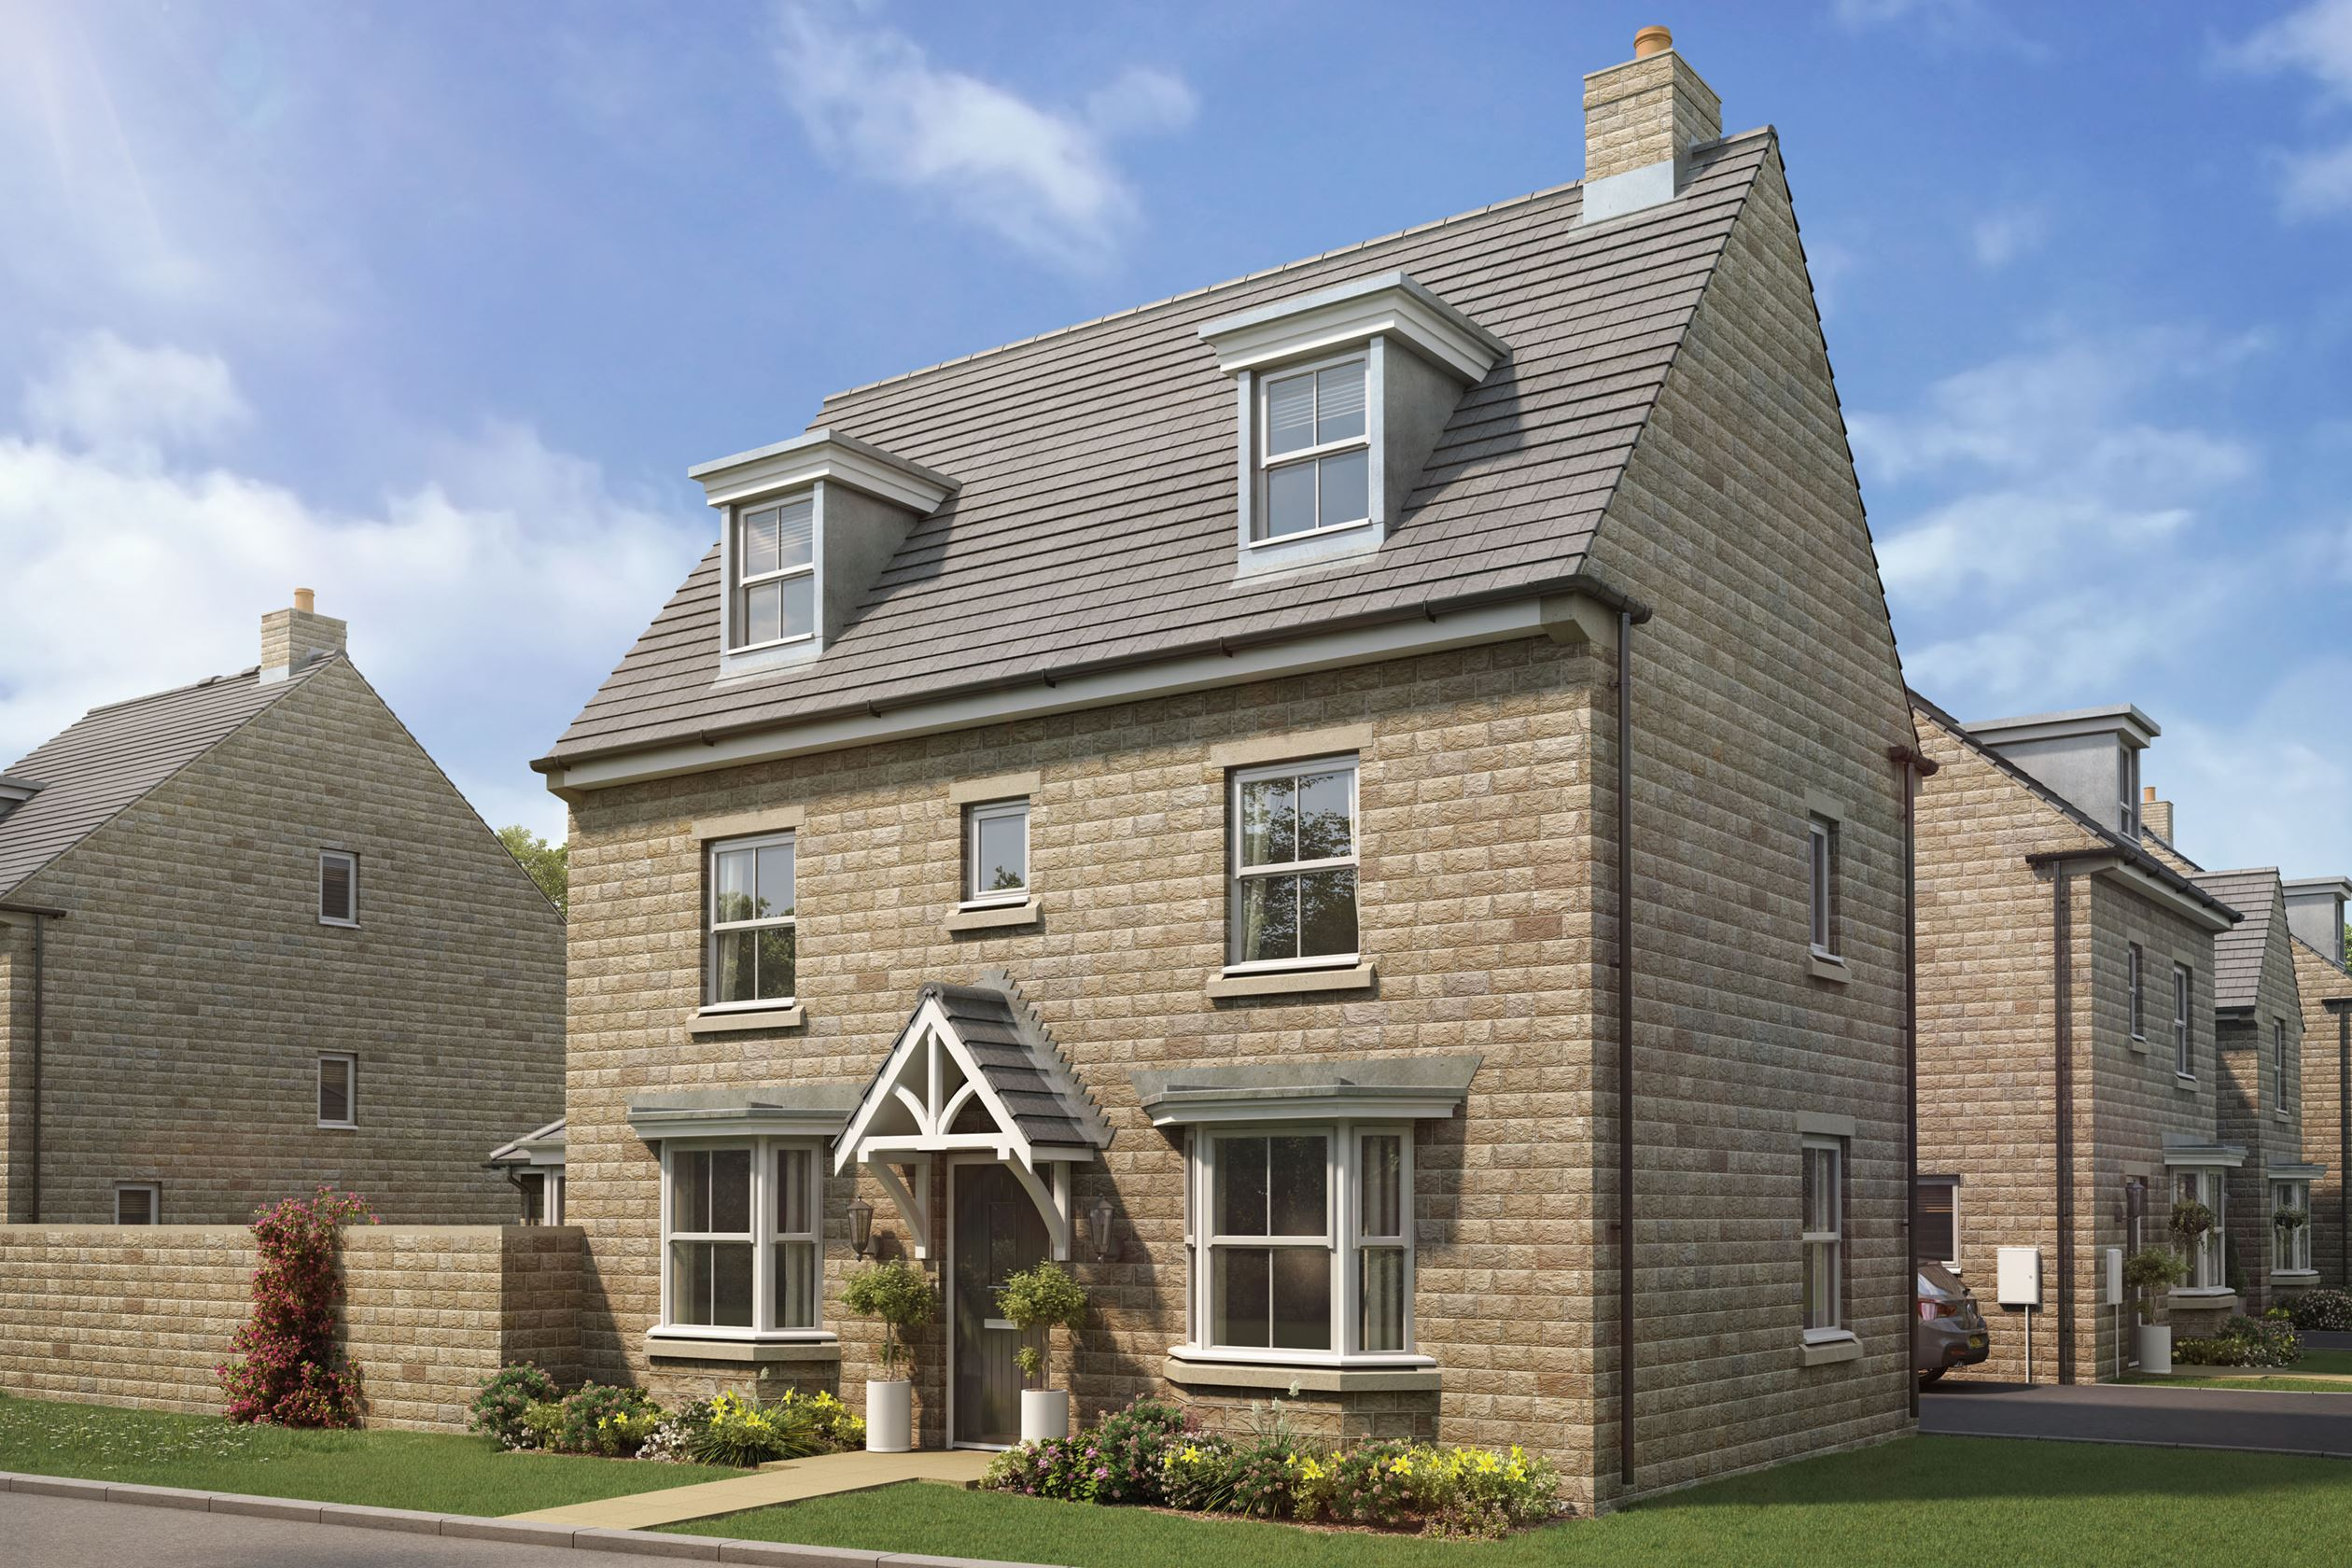 CGI image of Hertford style home with stone exterior finish